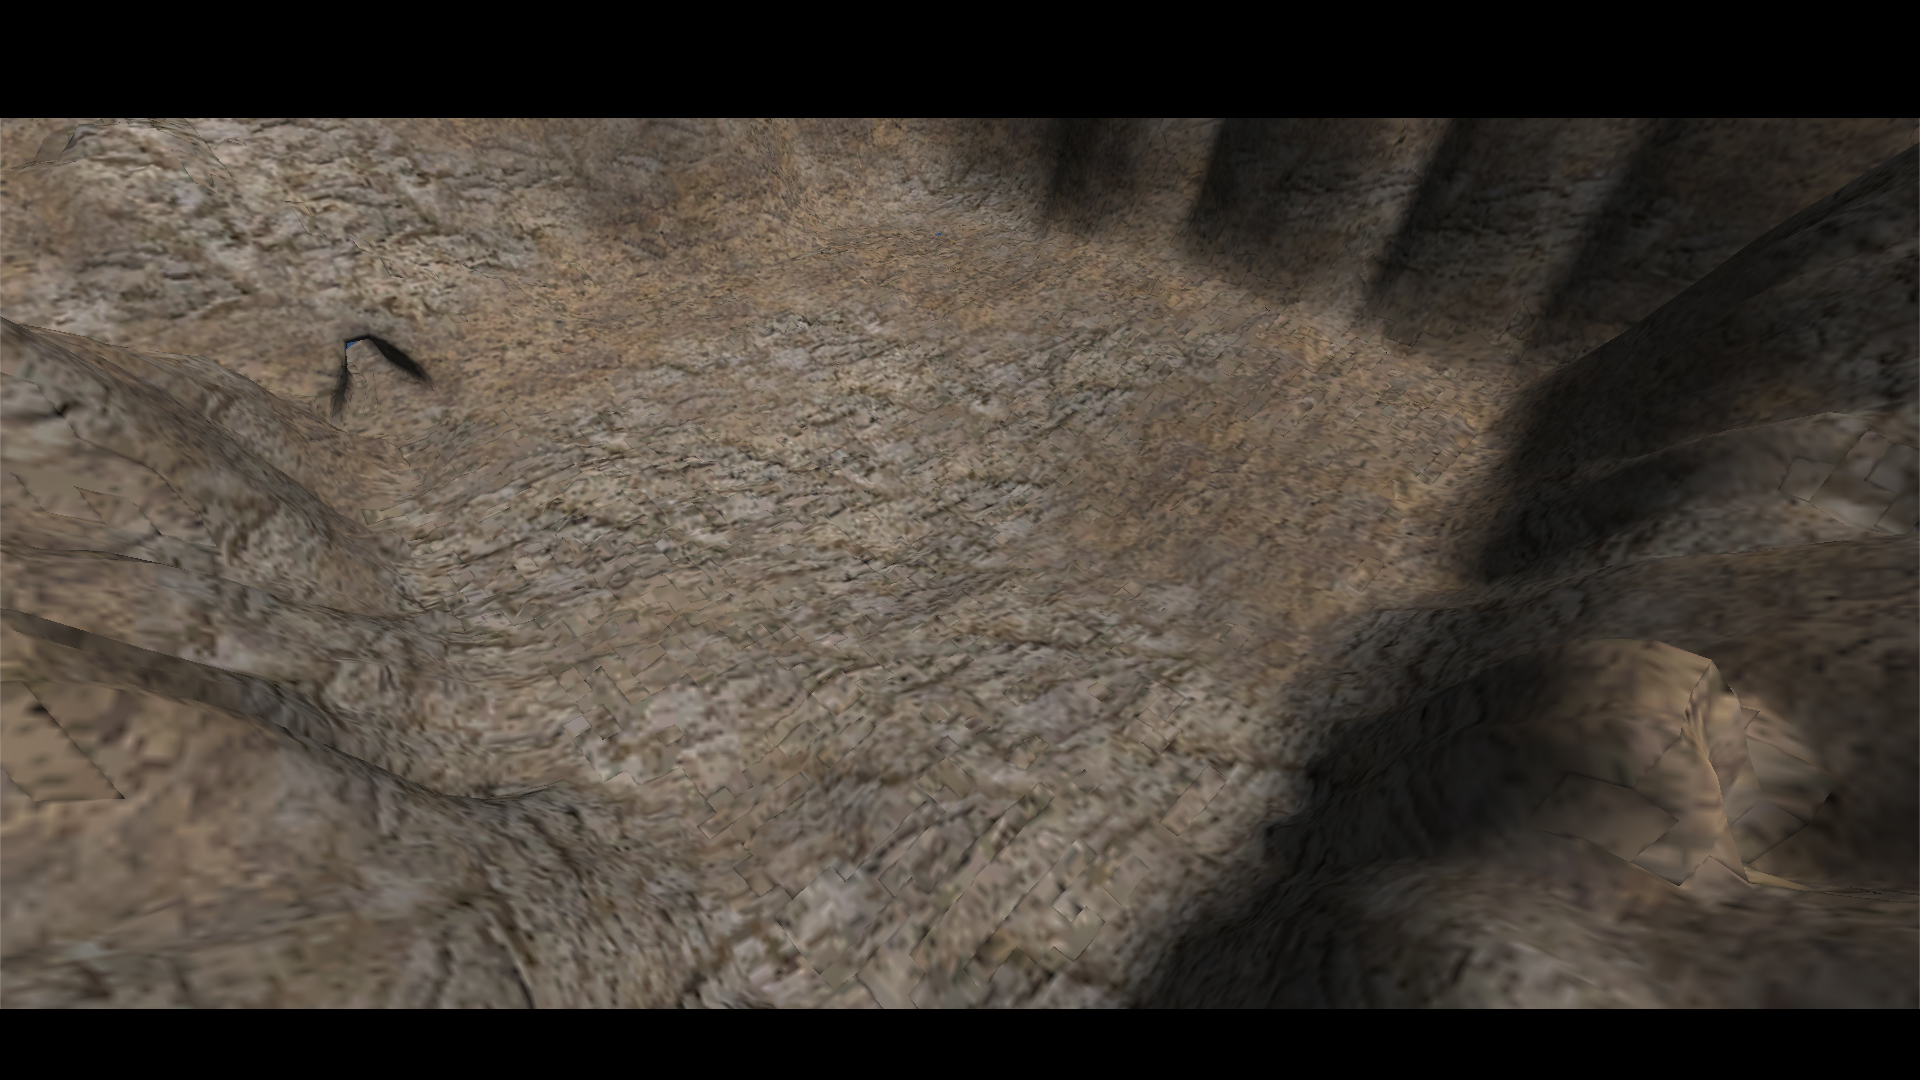 Baked textures look horrid in Unity - Other Software